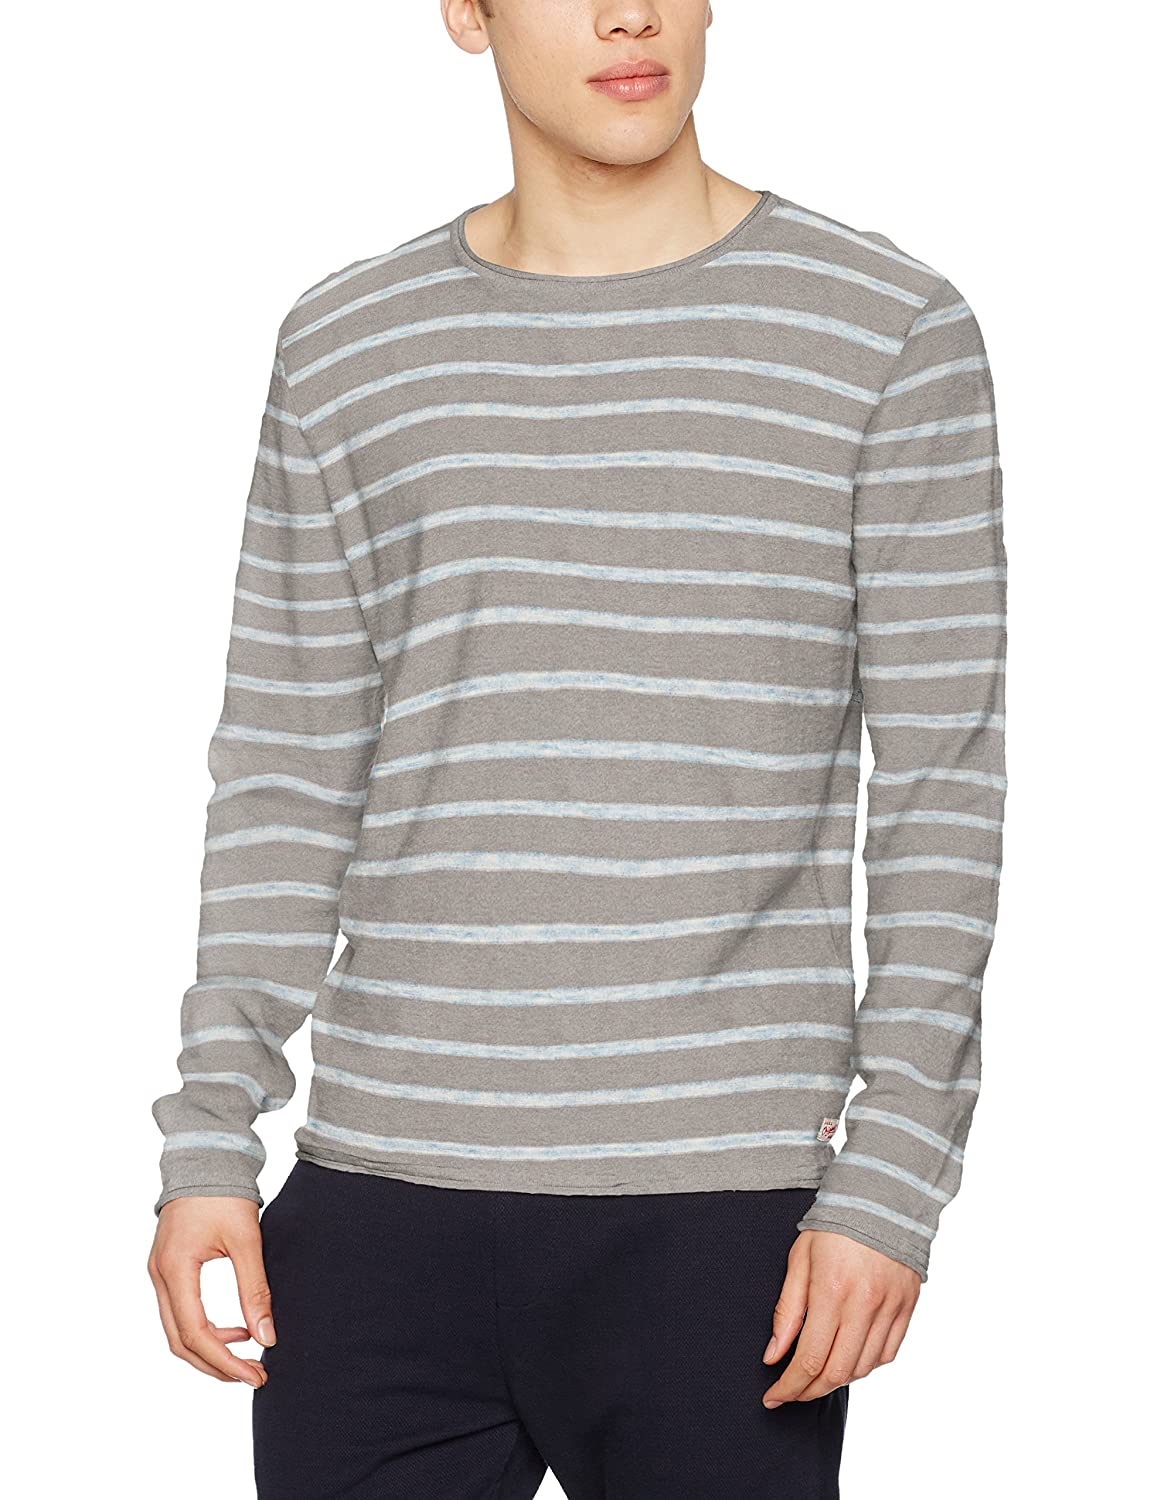 JACK & JONES Herren Pullover Joratlas Knit Crew Neck: Amazon.de: Bekleidung